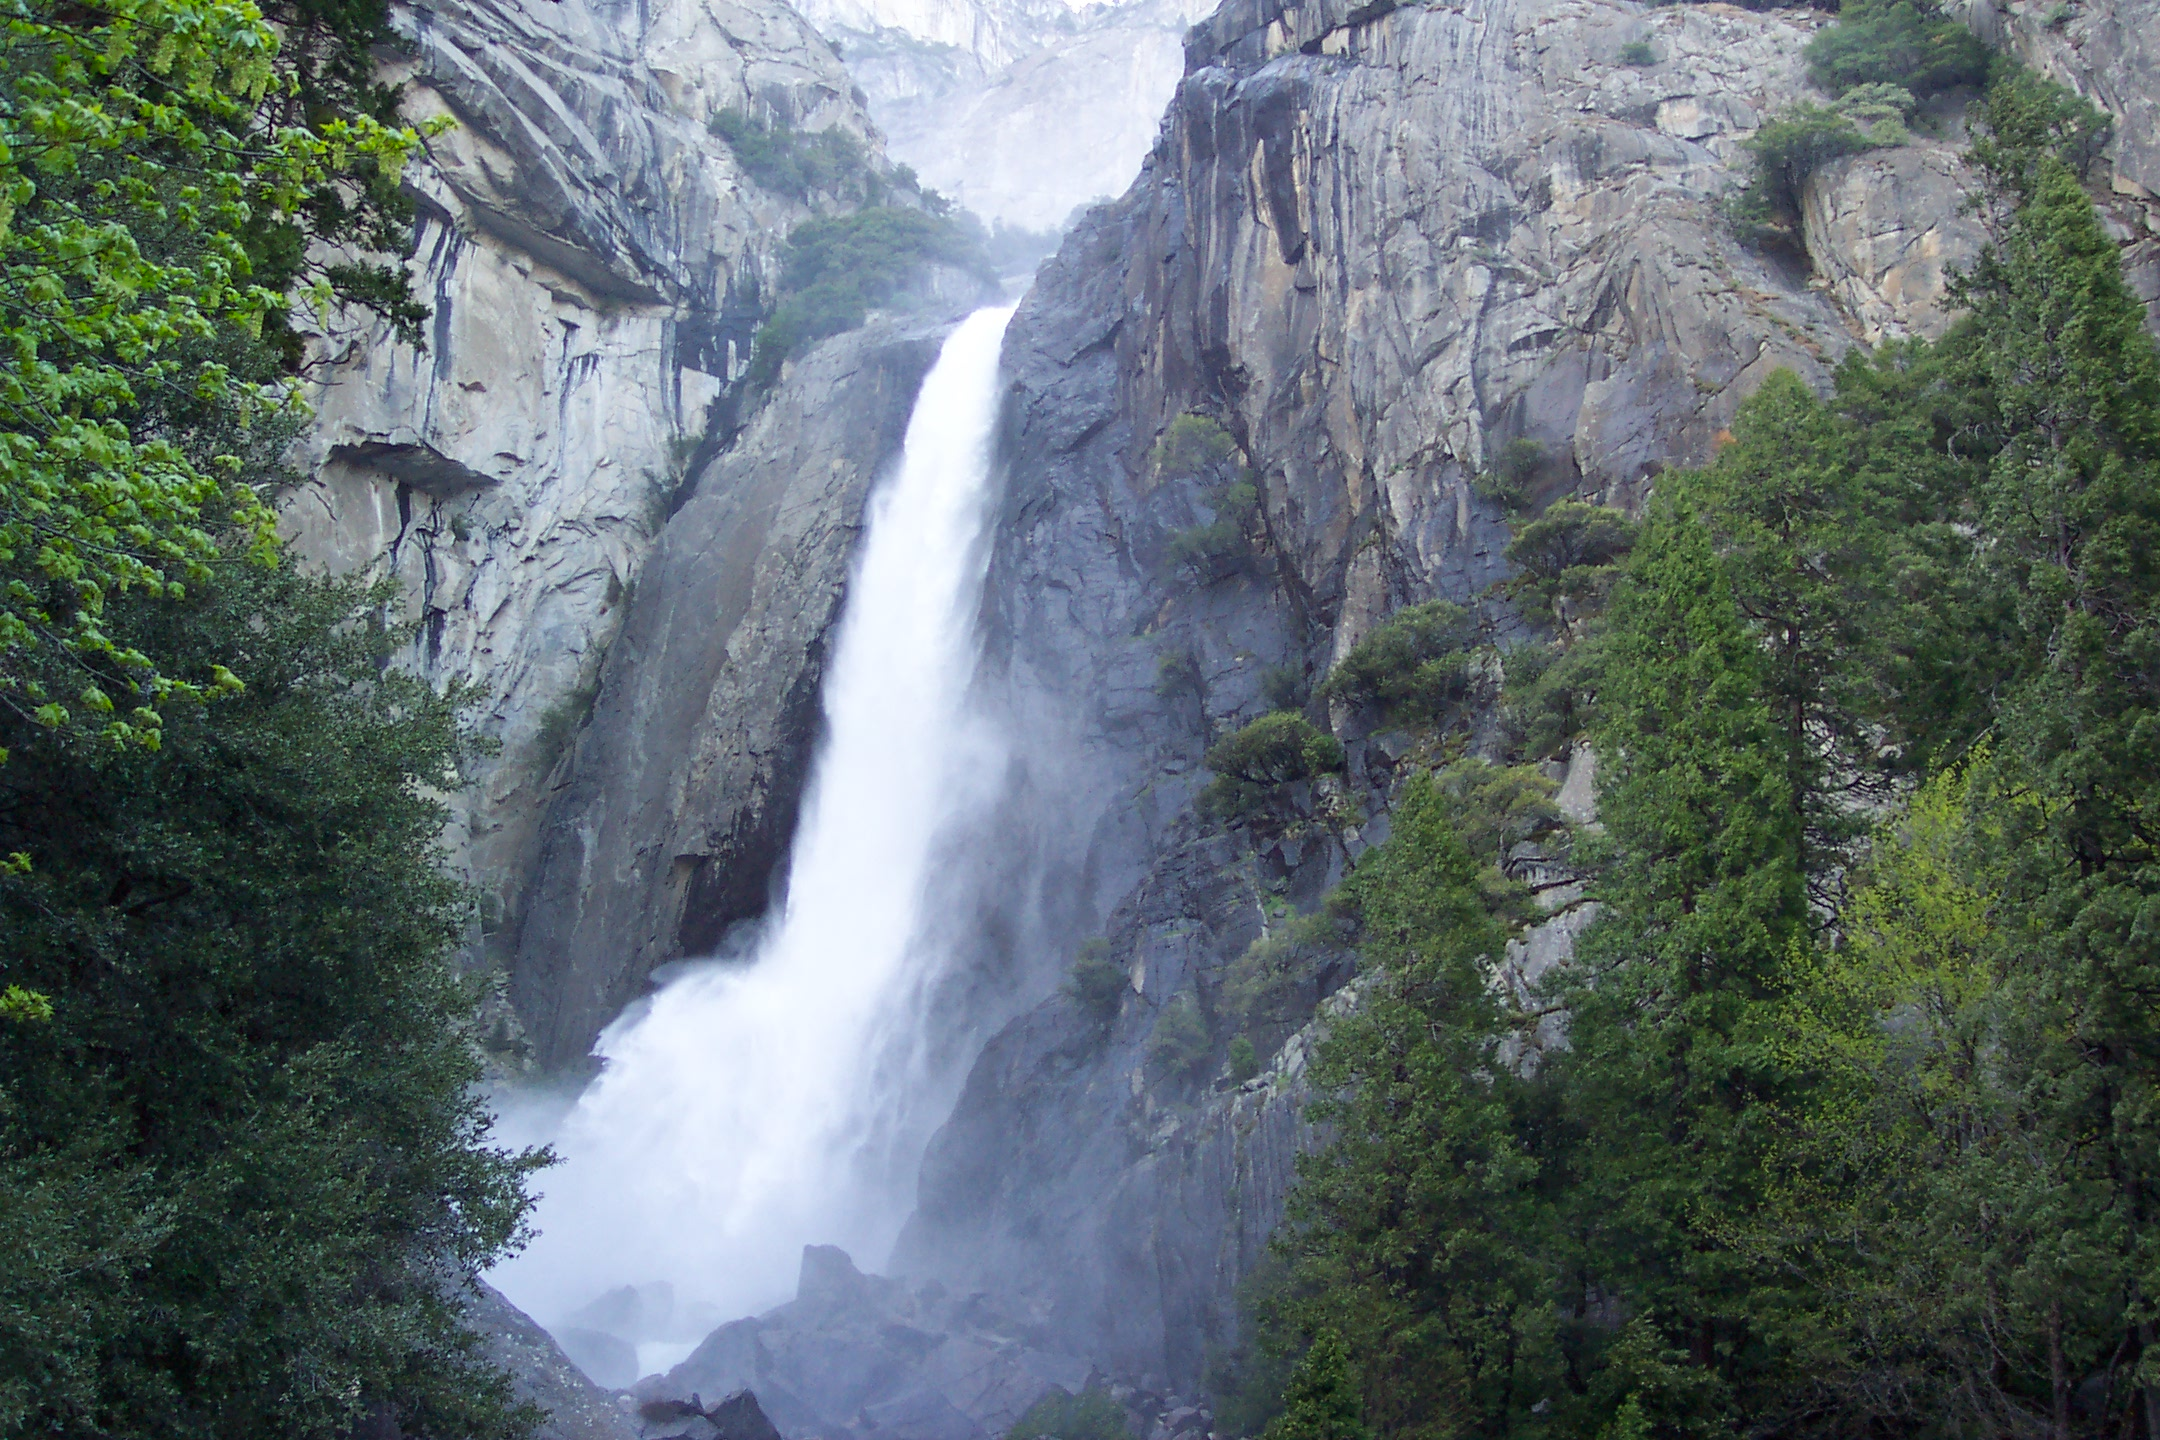 Base of Yosemite Falls